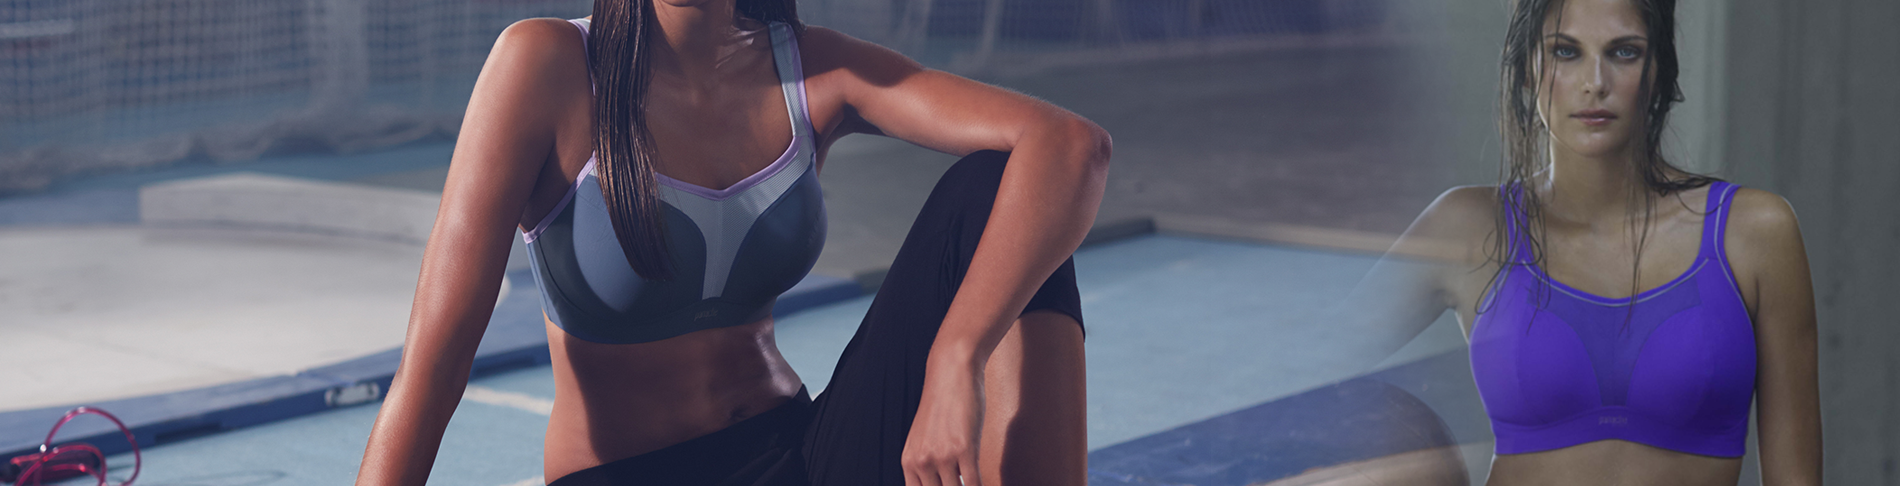 belle lingerie sports bra buying guide